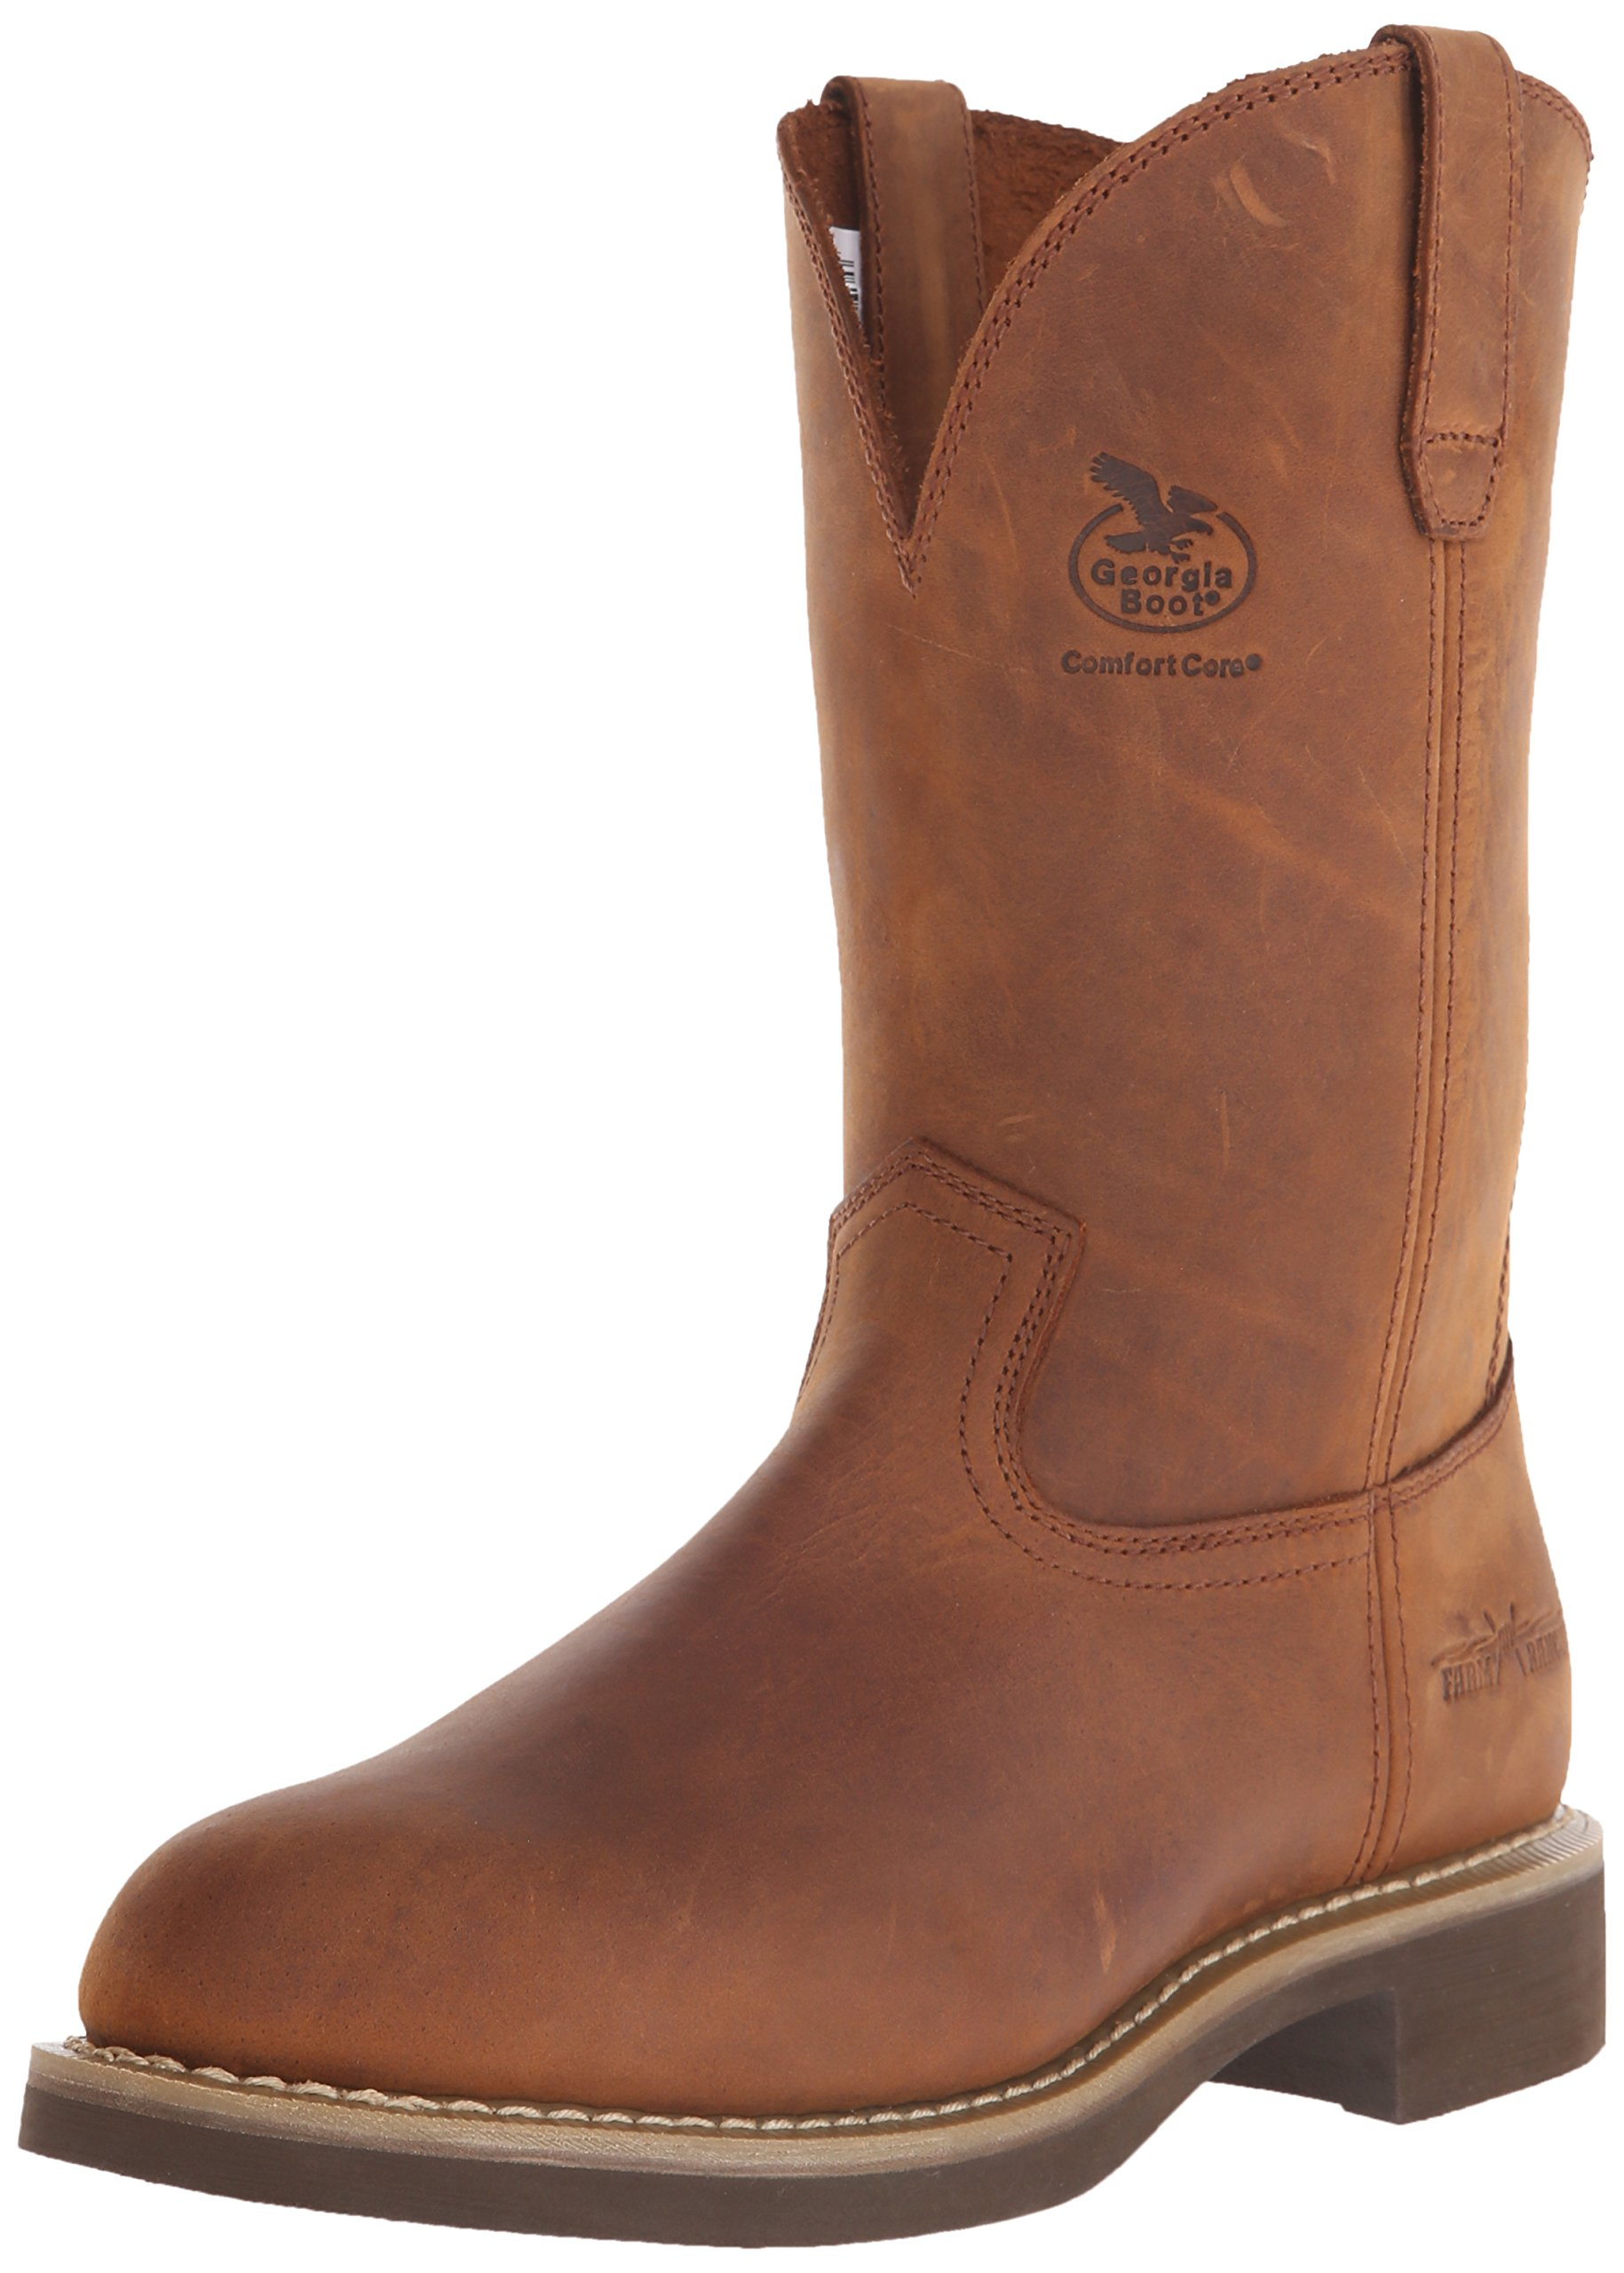 Georgia Men's Carbo Tec-M Farm and Ranch, Prairie Chestnut, 10 D US by Georgia